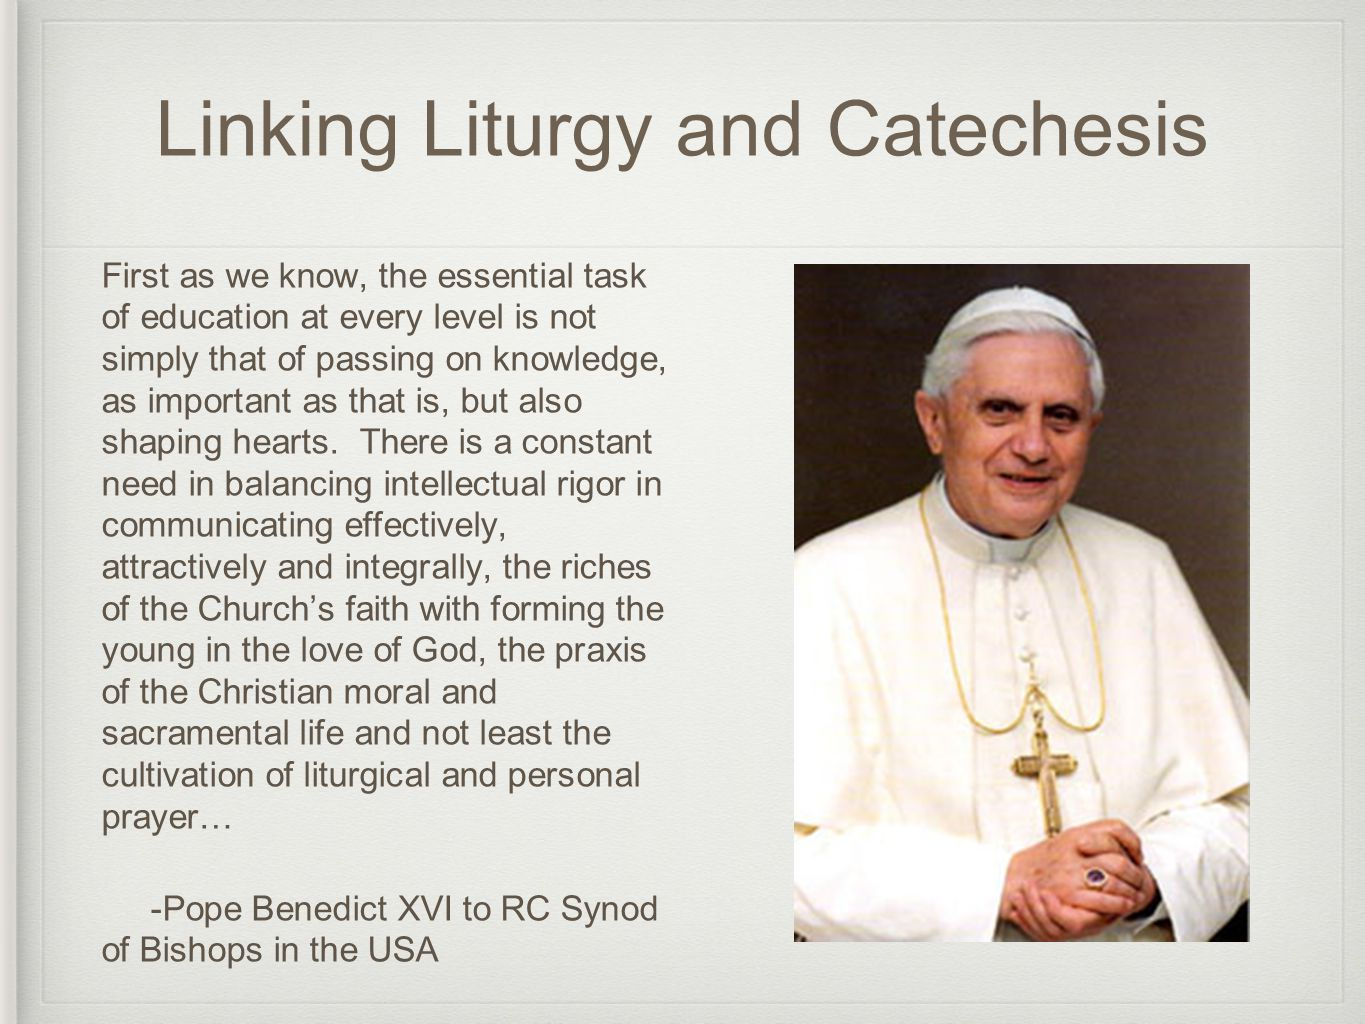 Linking Liturgy and Catechesis First as we know, the essential task of education at every level is not simply that of passing on knowledge, as important as that is, but also shaping hearts.